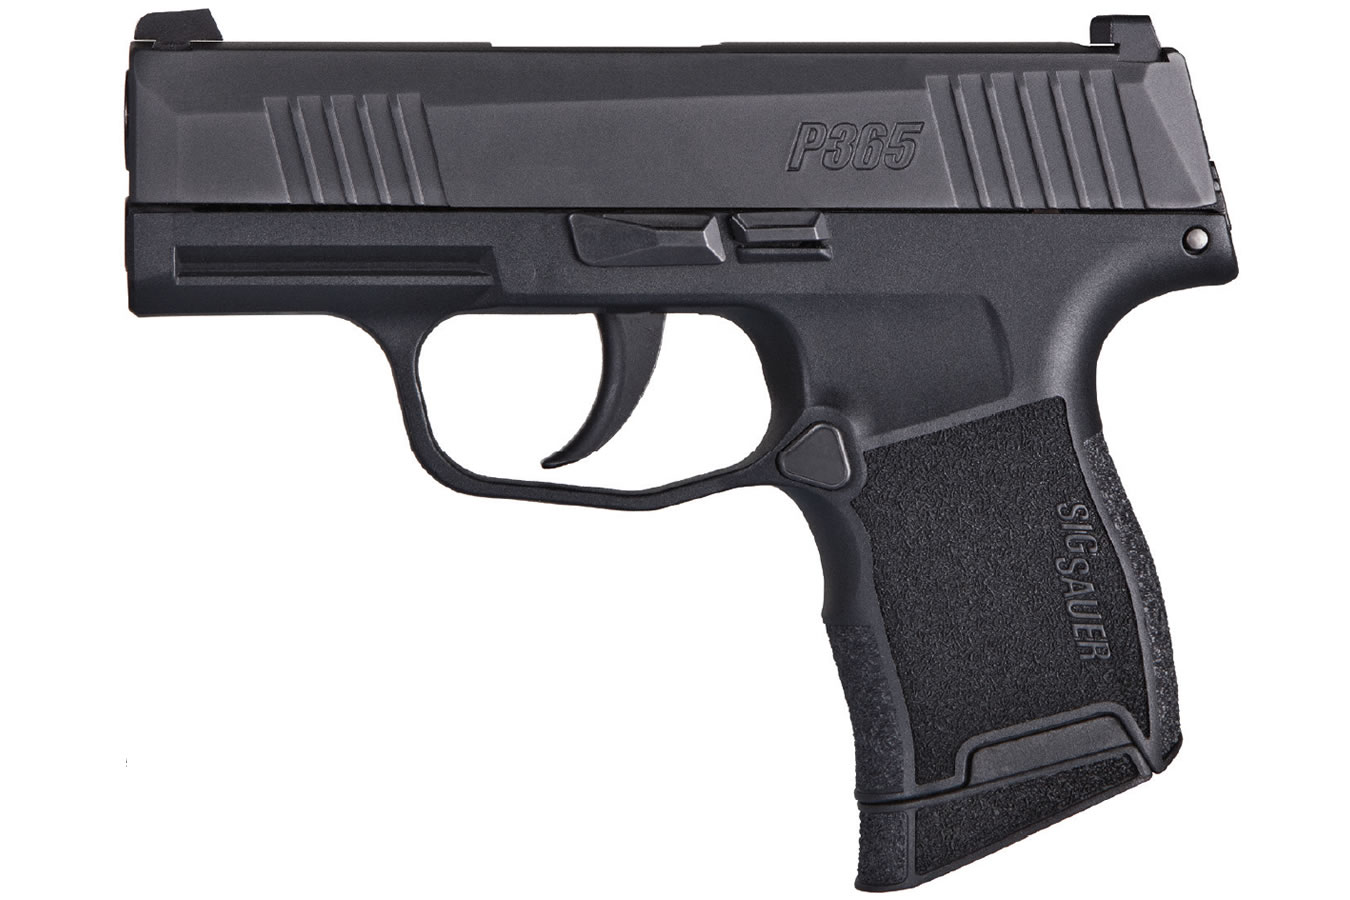 pistol 9mm p365 compact sig micro sauer fired striker sportsman superstore bss condition number